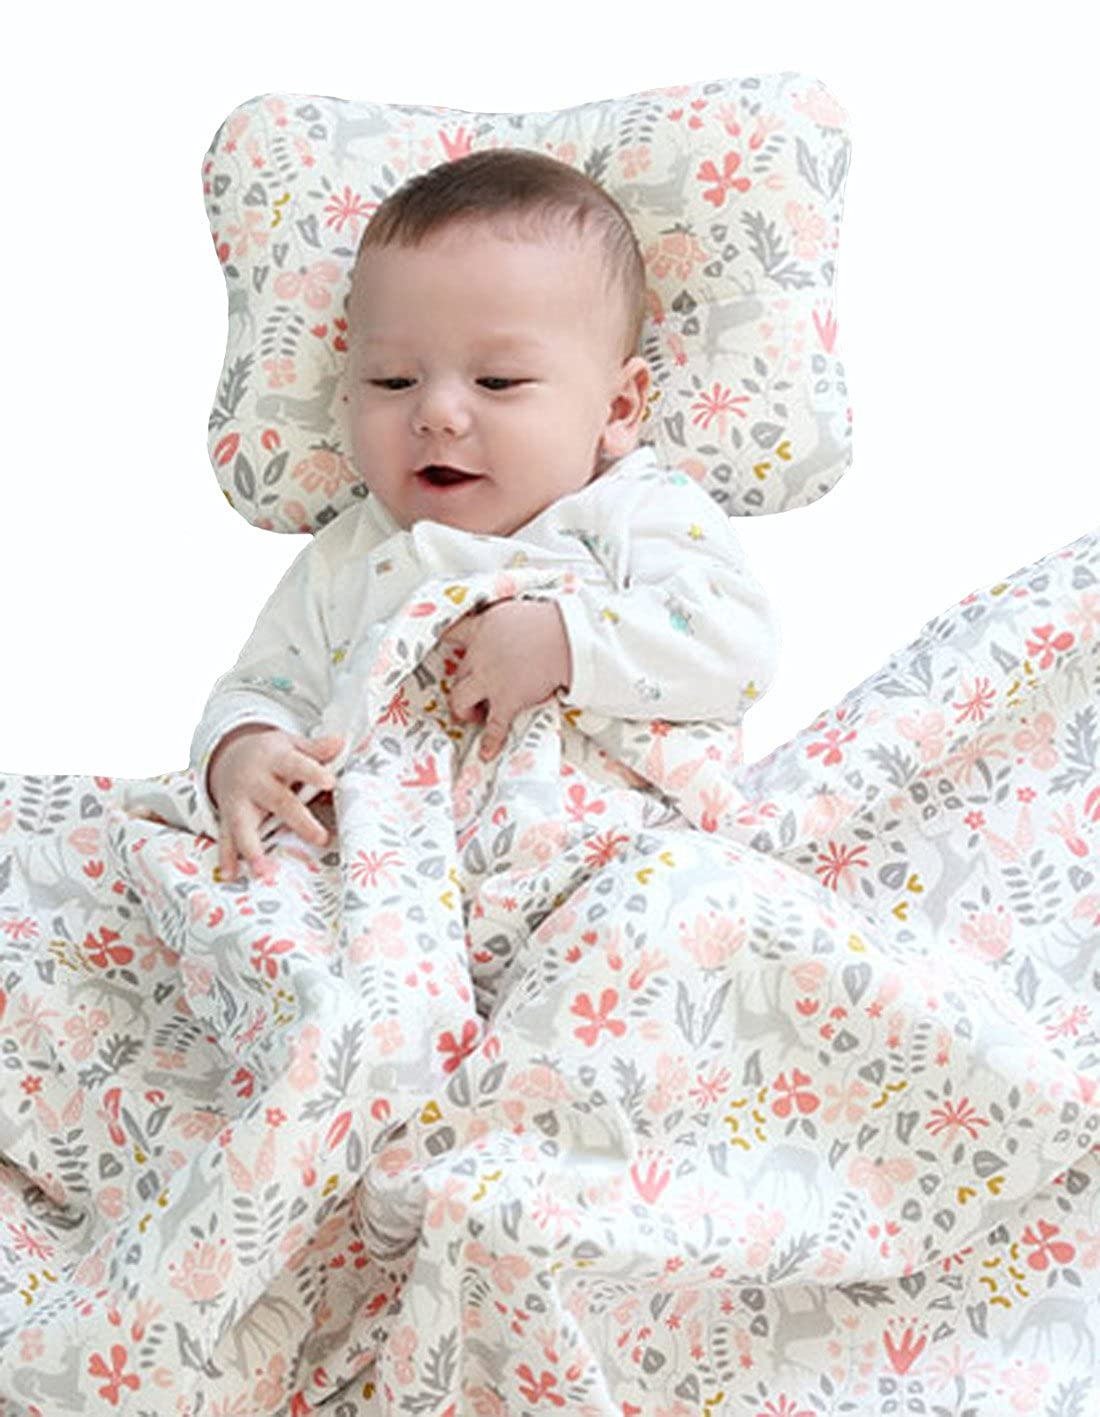 Blanket 31 x 40 W WelLifes Super Soft Baby Printed Organic Cotton Mink Blanket with Dotted Plush Velboa Fabric Backing